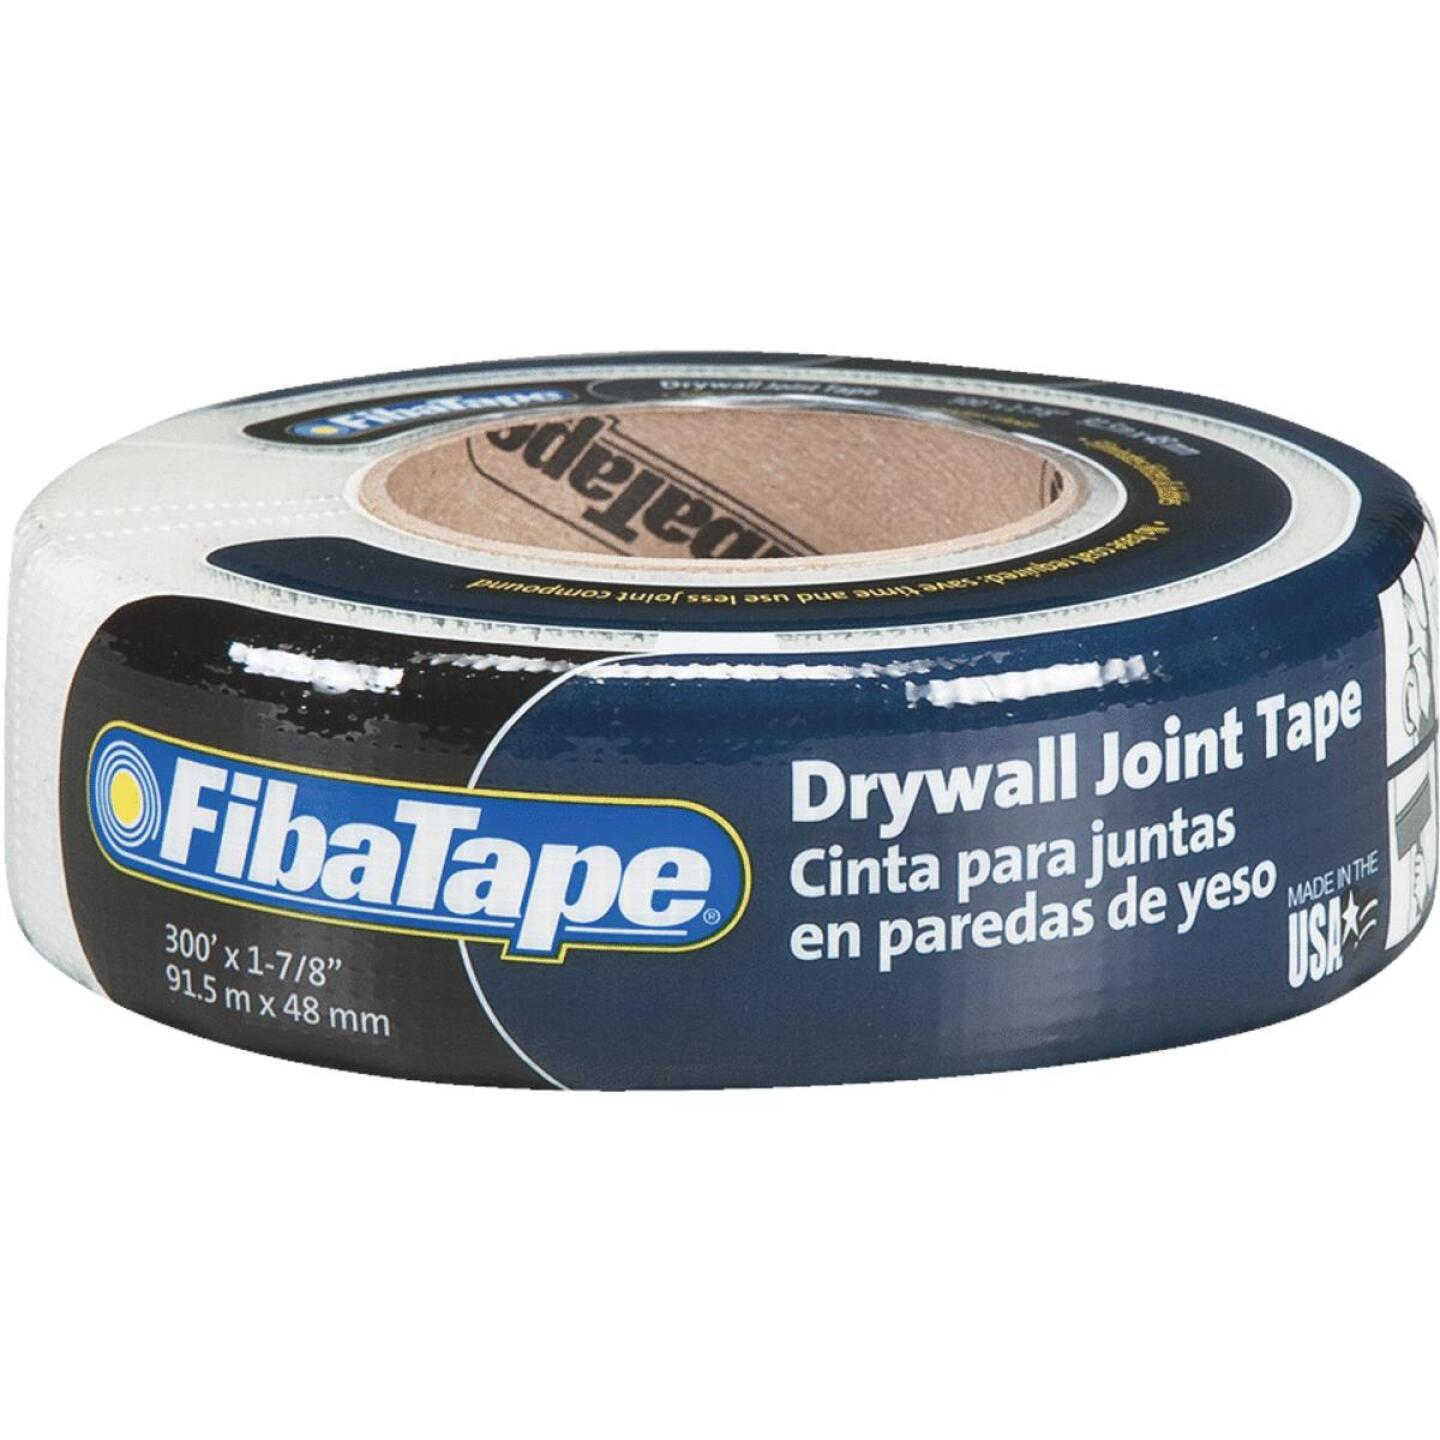 FibaTape 1-7/8 In. x 300 Ft. White Self-Adhesive Joint Drywall Tape Image 1